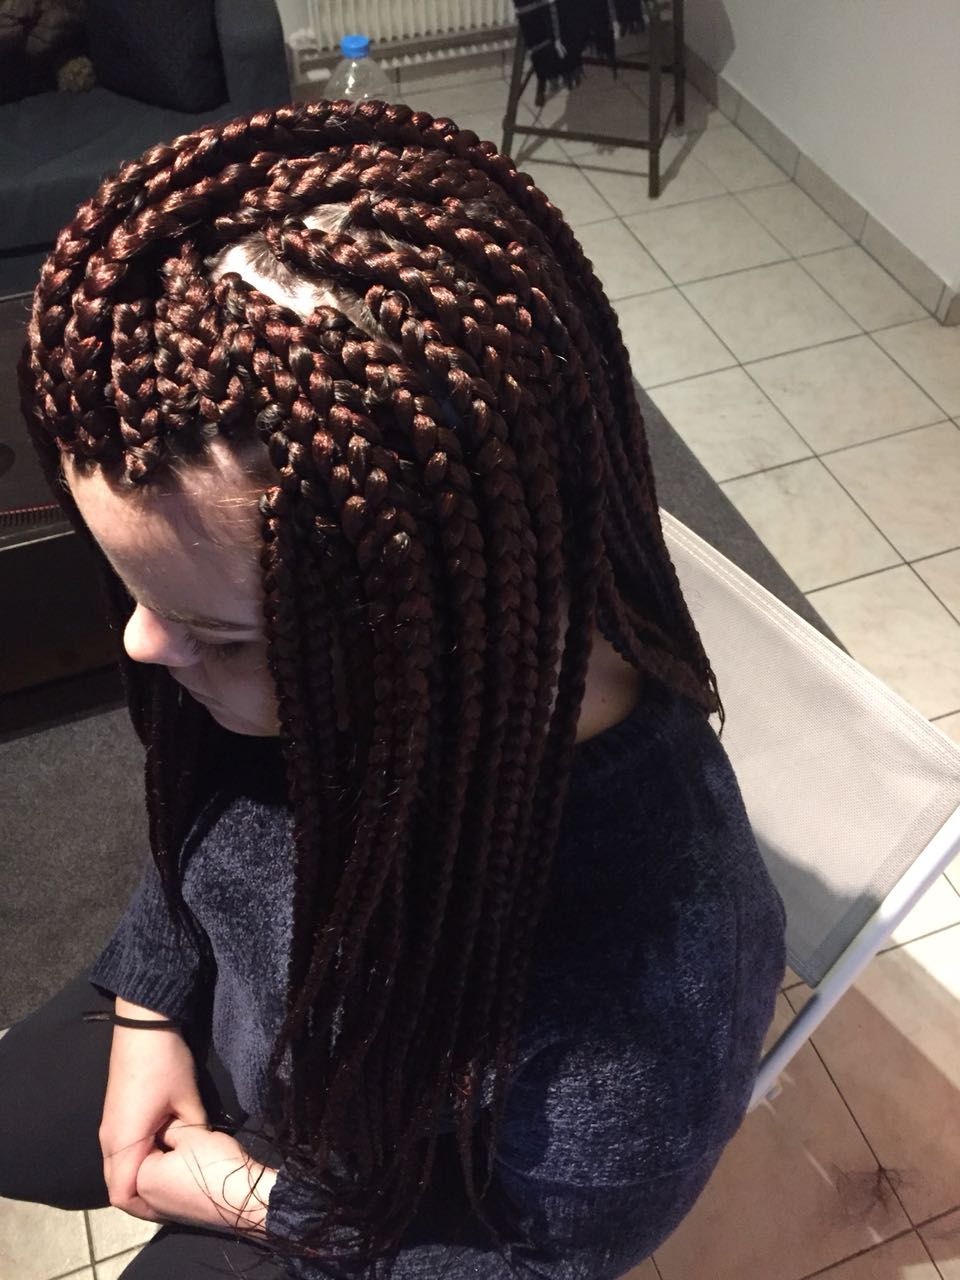 salon de coiffure afro tresse tresses box braids crochet braids vanilles tissages paris 75 77 78 91 92 93 94 95 OCTHHAVD